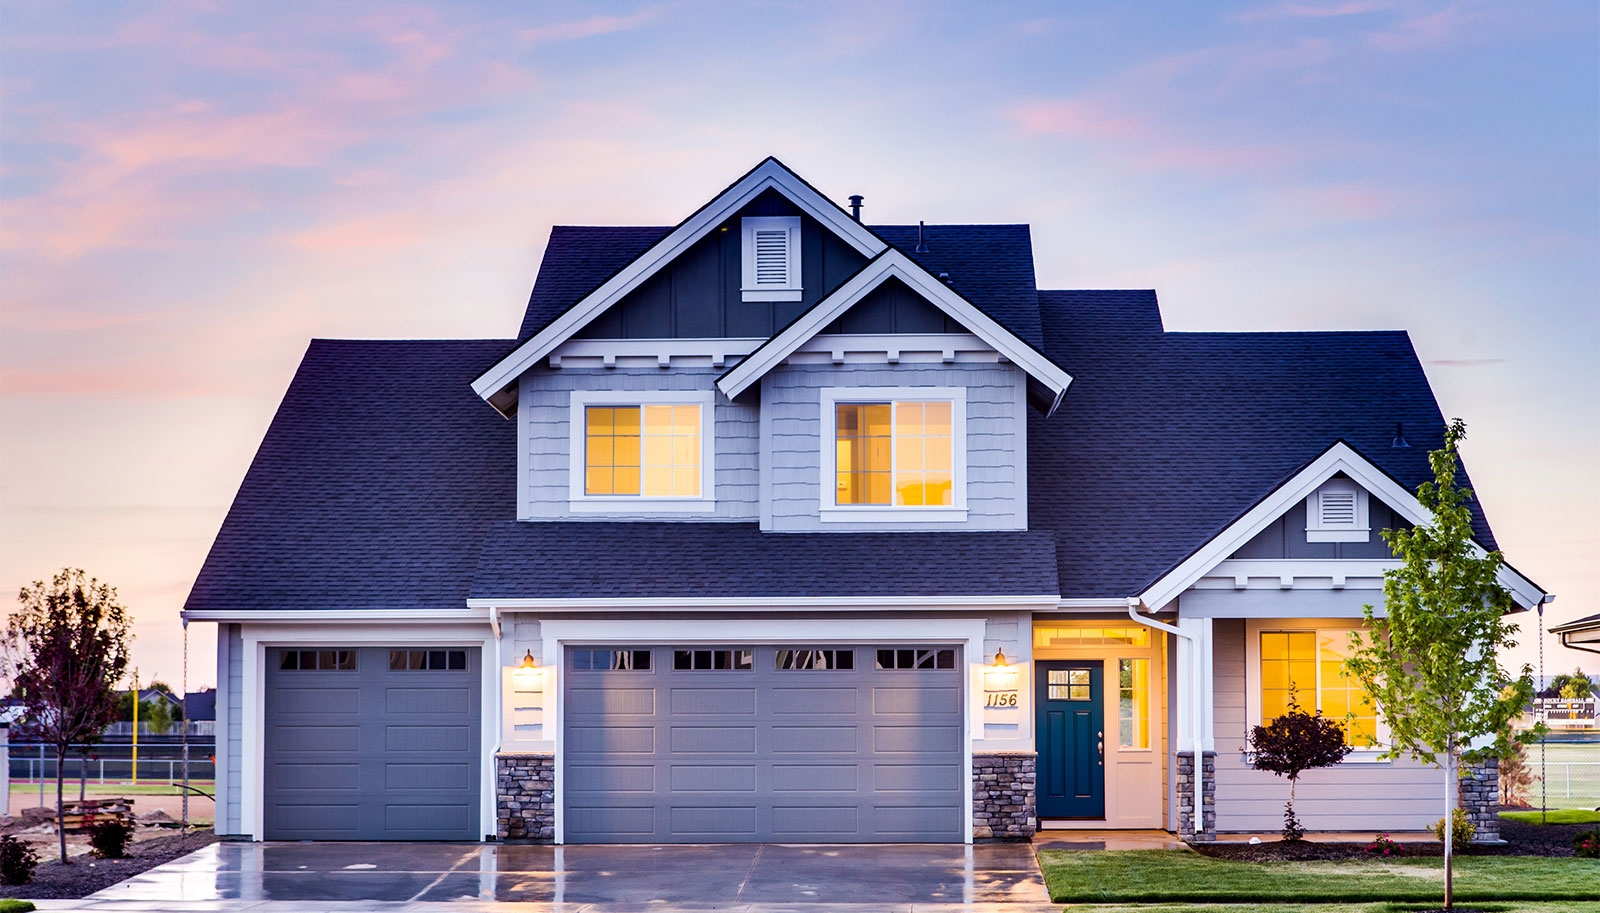 Roofing - At Rayo Construction & Roofing LLC, we are dedicated to excellence. Our experienced team can improve the look of your home, bringing you the highest quality at a low price. We offer a full range of residential and commercial roofing products and services in Nashville, TN.